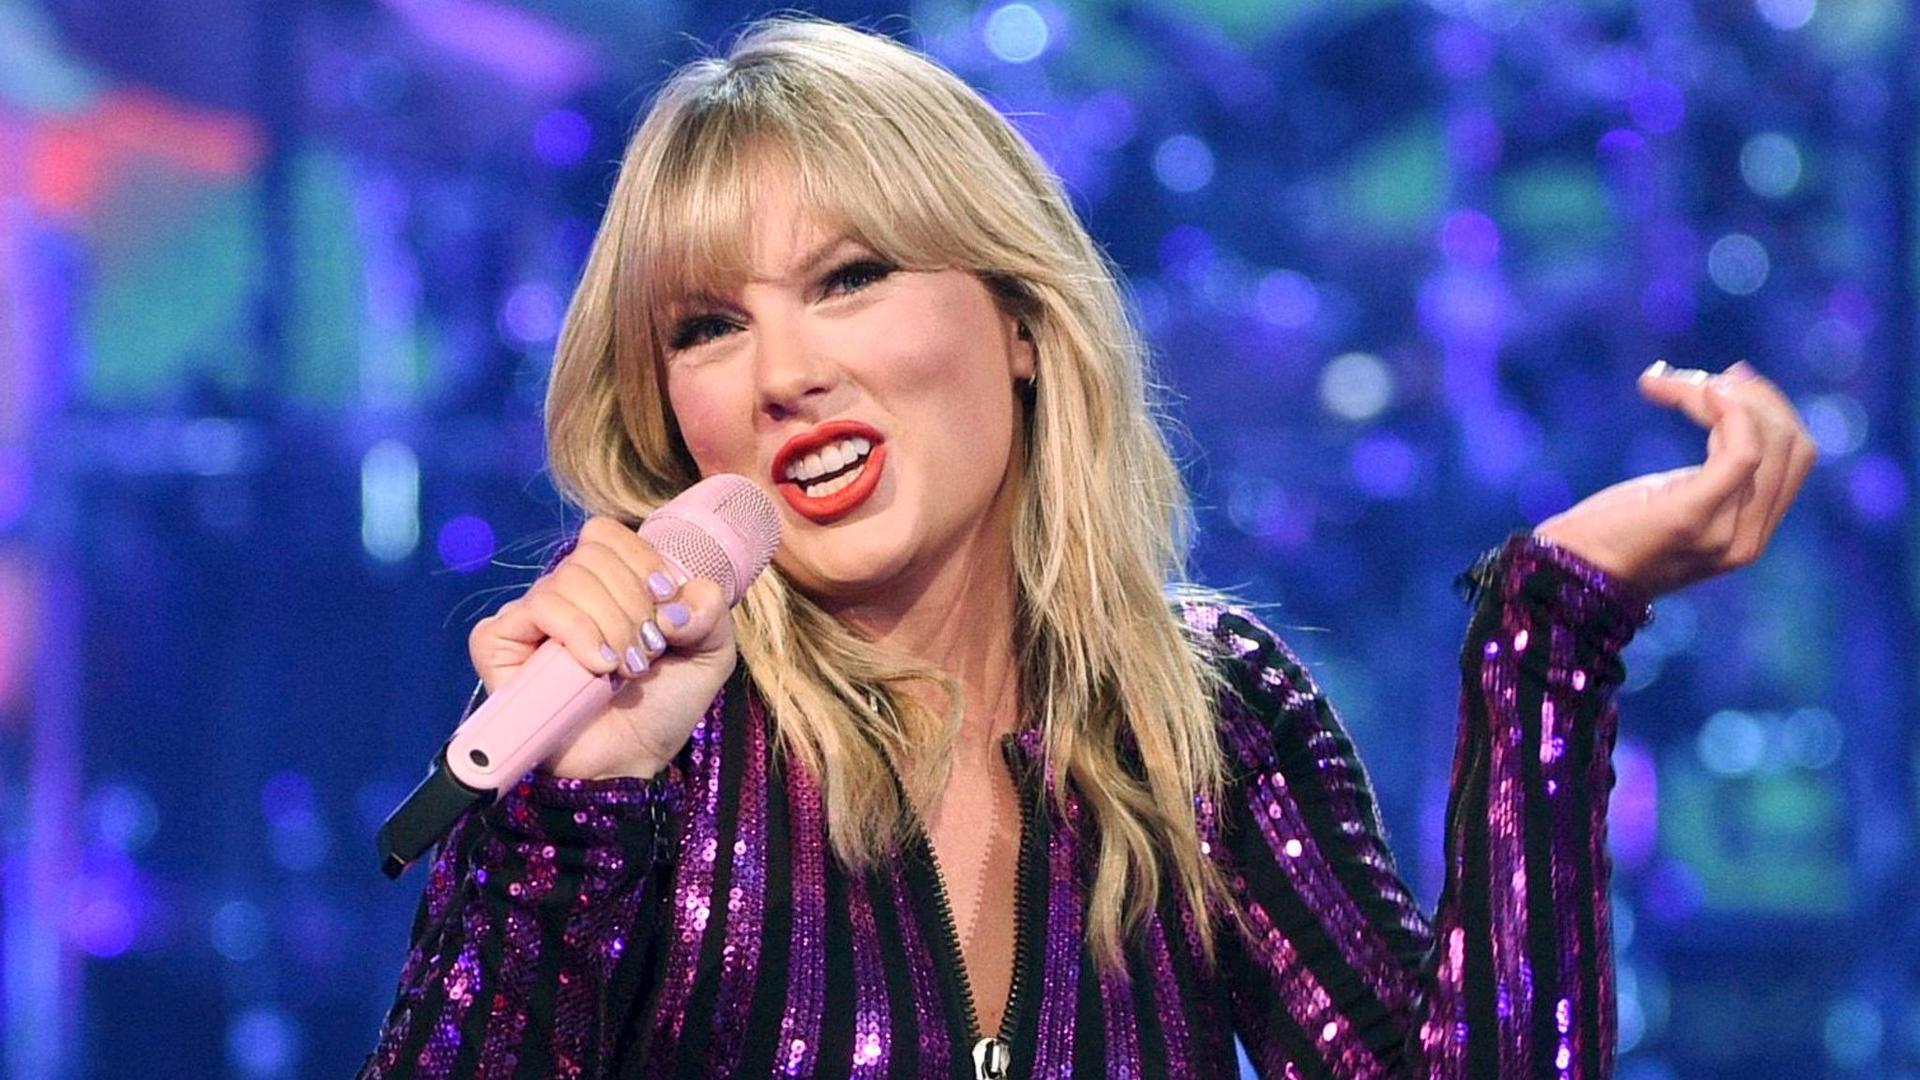 She is currently the measure of all things: Taylor Swift.